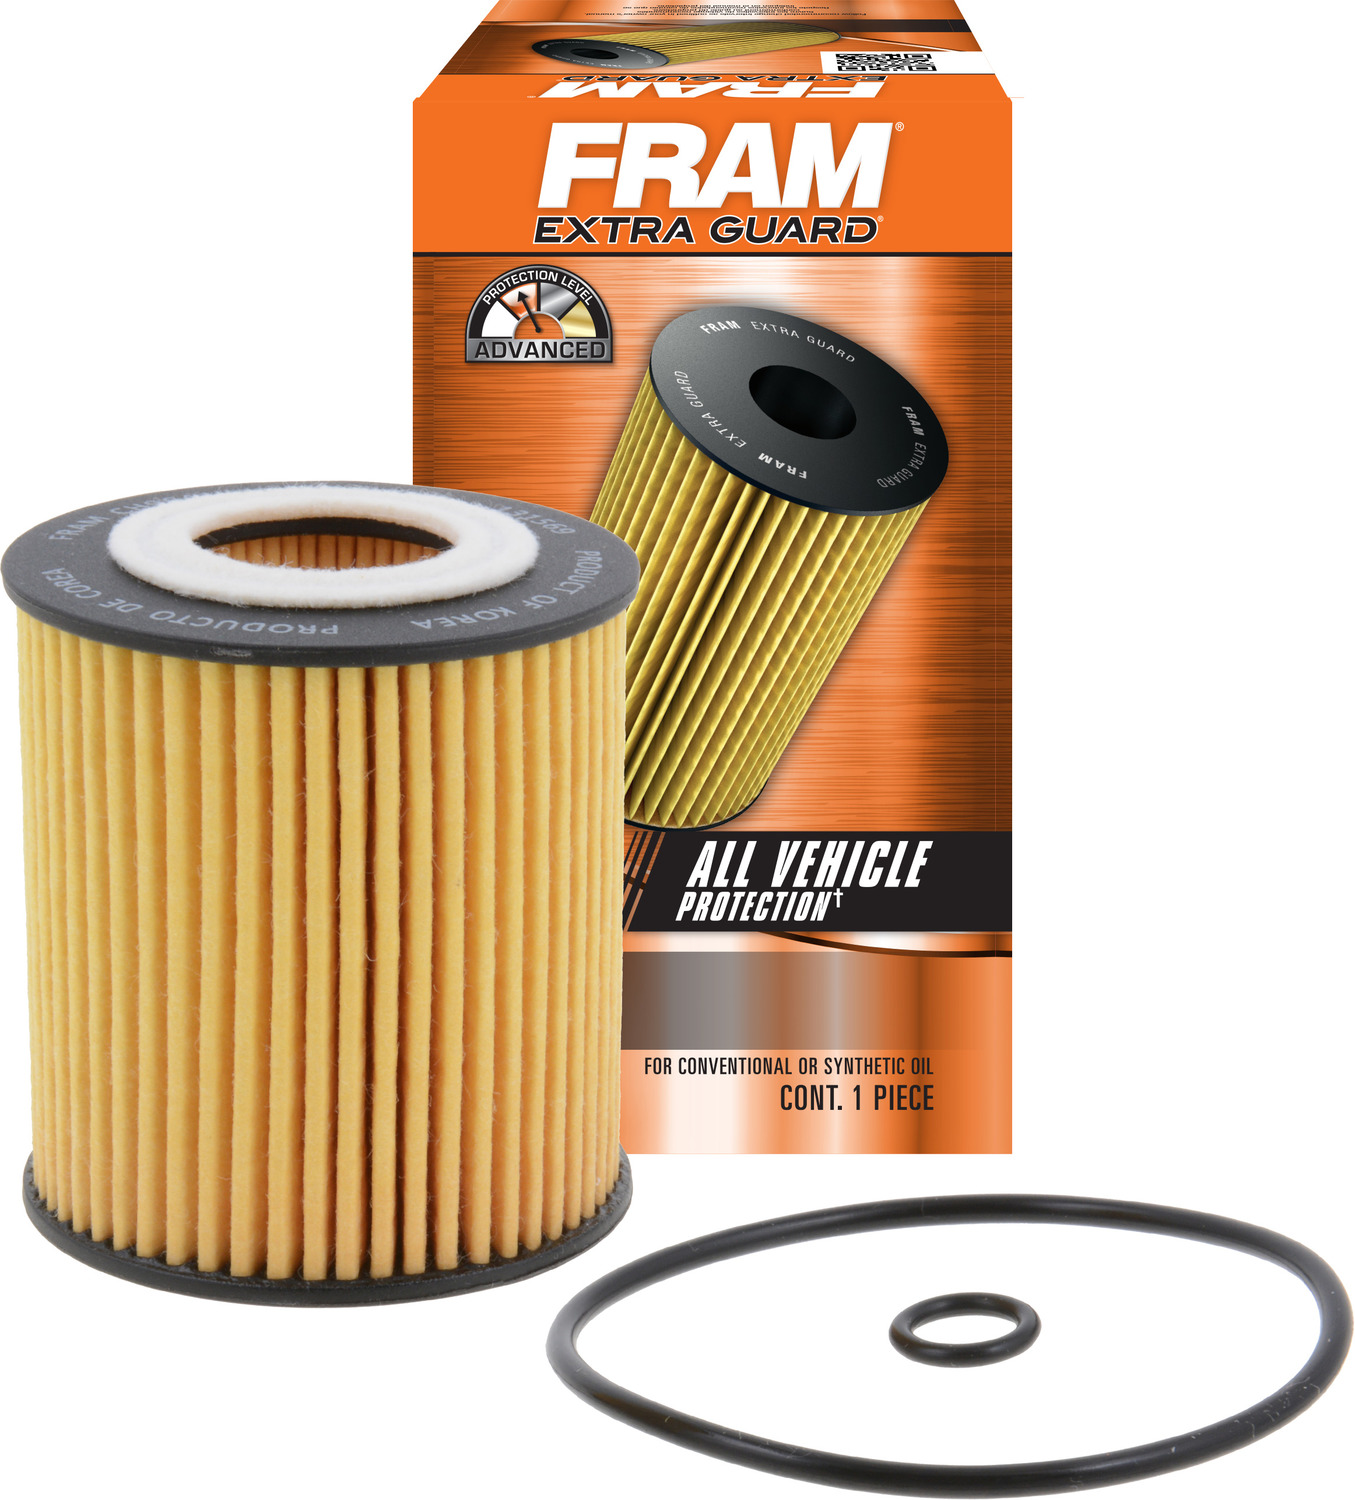 FRAM Extra Guard Oil Filter, CH9641